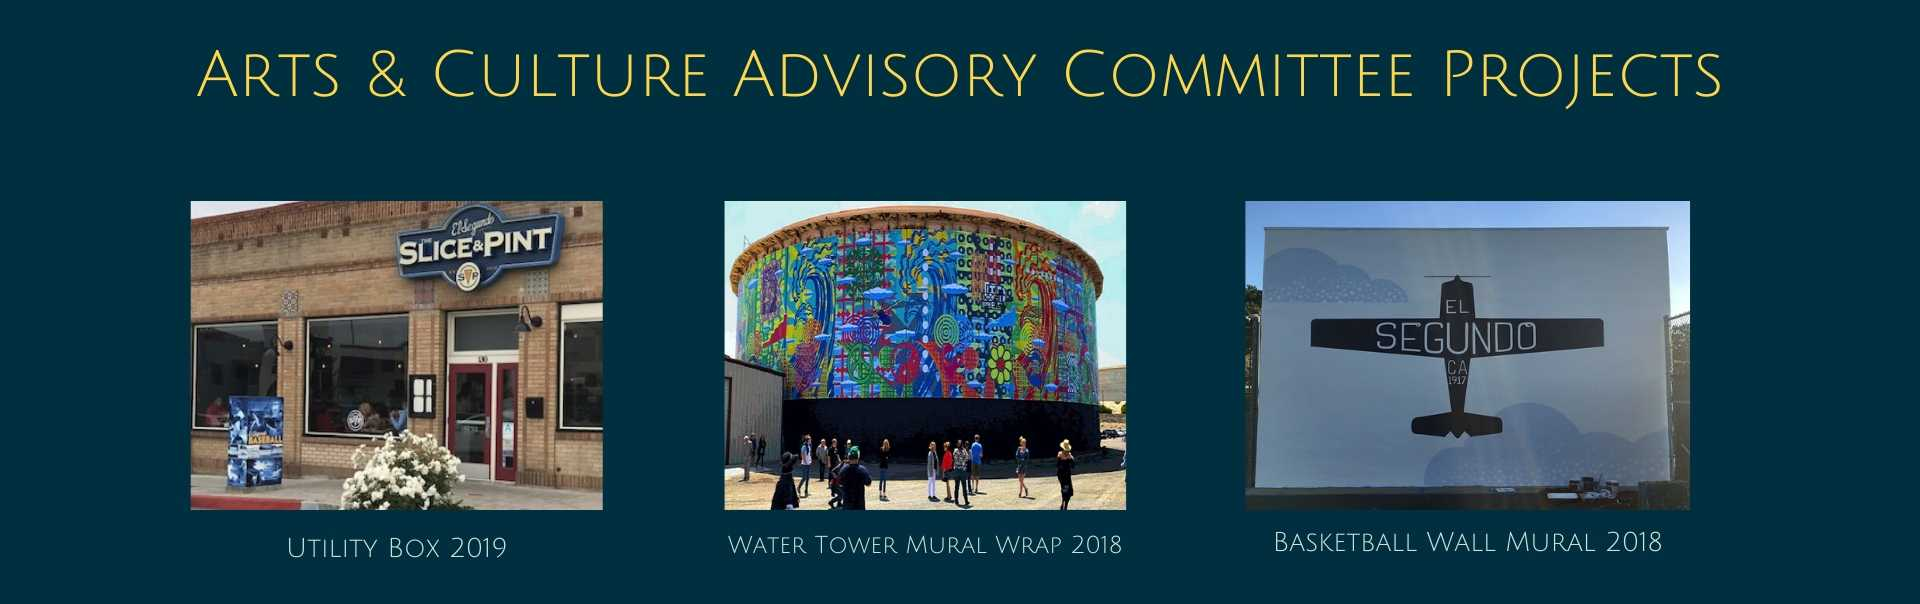 image of arts and culture advisory committee projects